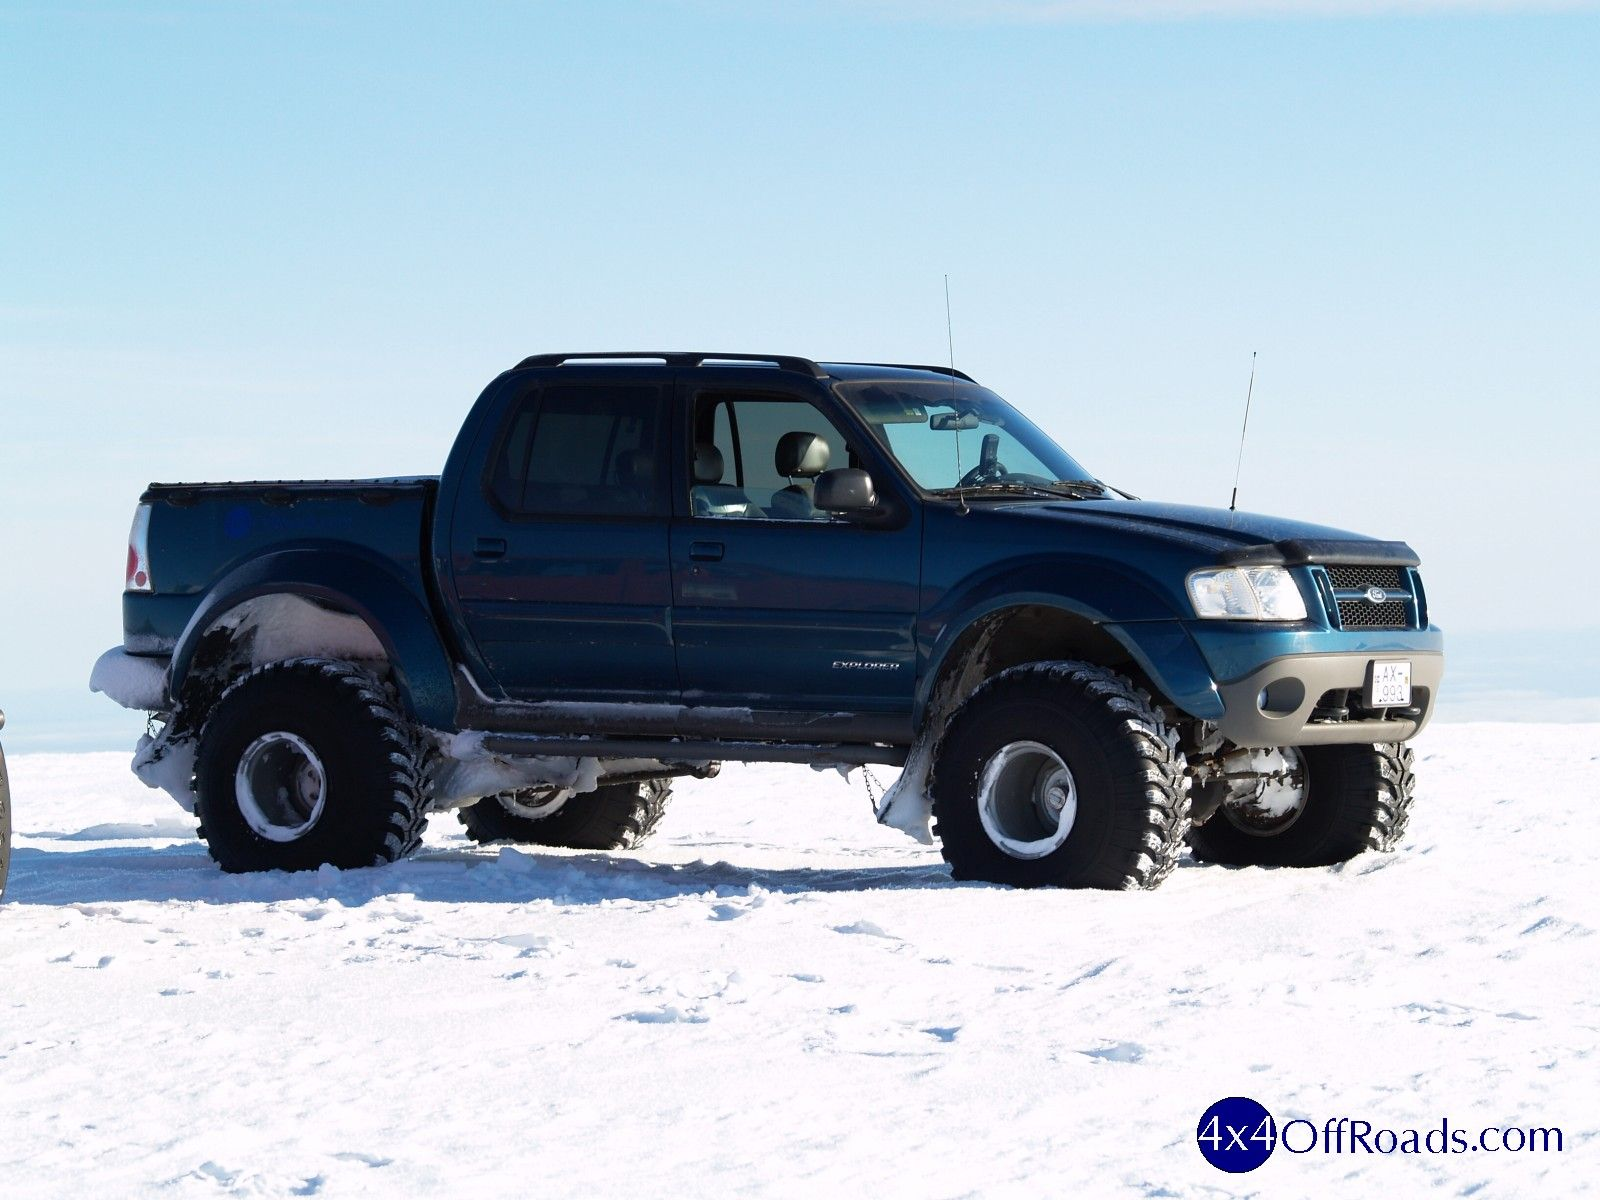 lifted sport trac the ford explorer sport trac wallpaper download pictures come in the - Ford Explorer Sport Trac